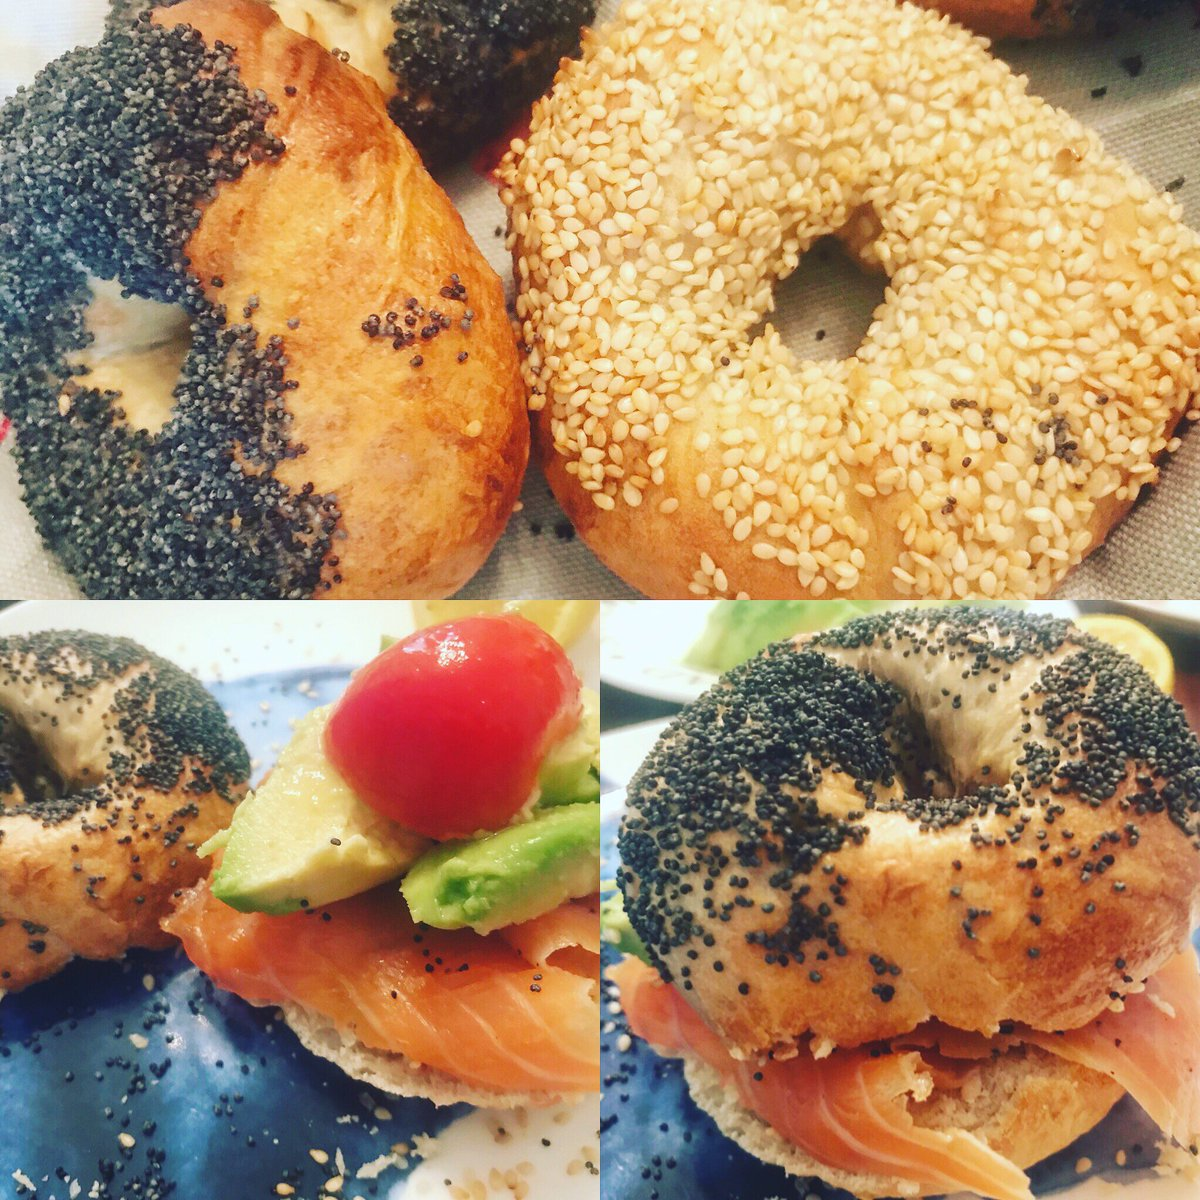 Homemade bagels for breakfast, smoked salmon, avocado, tomatoes, yummy! #homemadecooking #breakfast #bagels #yummy https://t.co/ZdD1XfwL1V